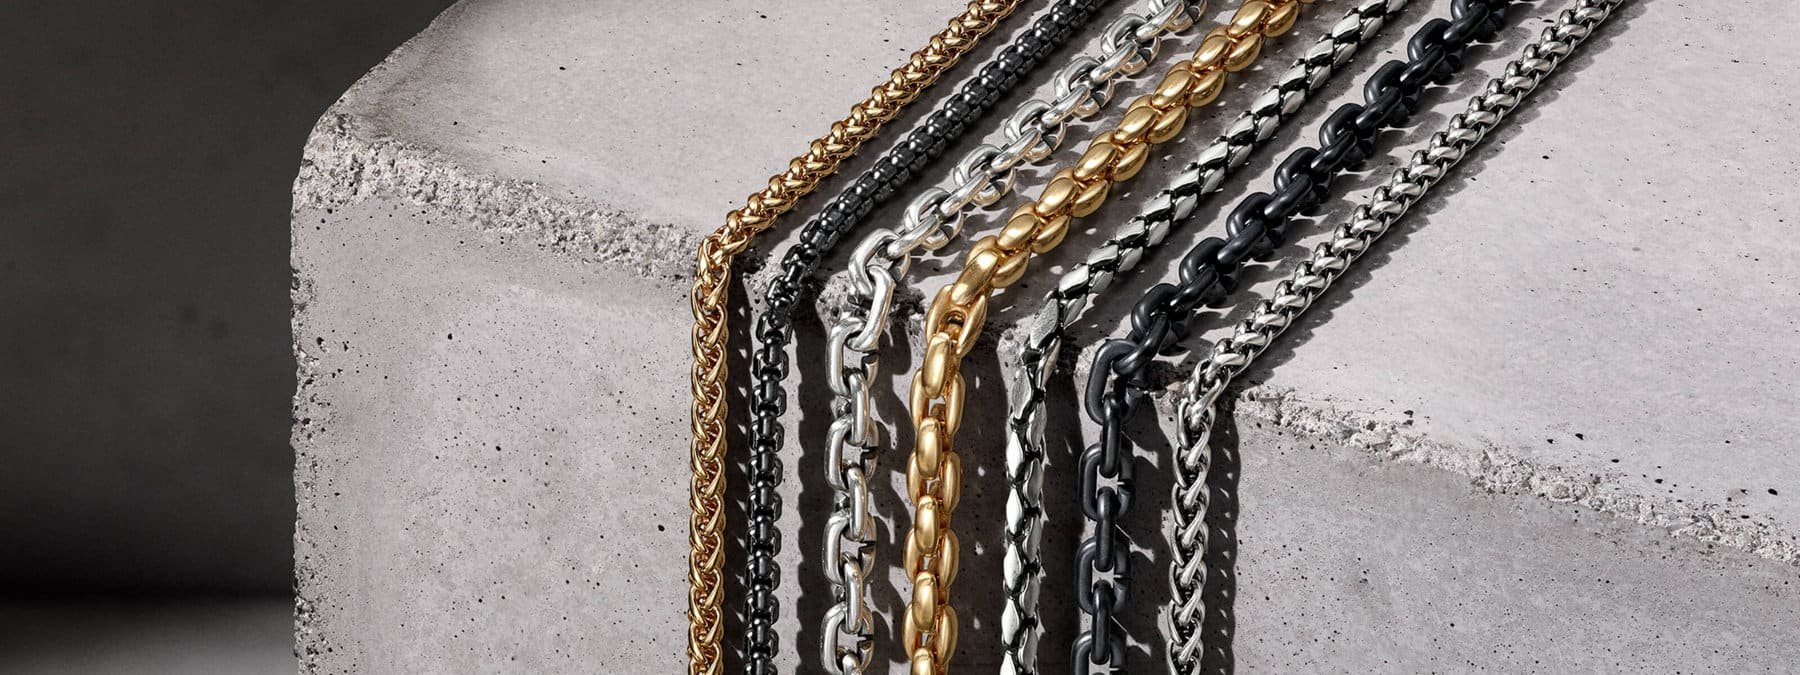 A horizontal array of David Yurman Men's Chain necklaces in 18K gold, black titanium or sterling silver, in the light draped over the top and down the side of a light grey, textured stone.